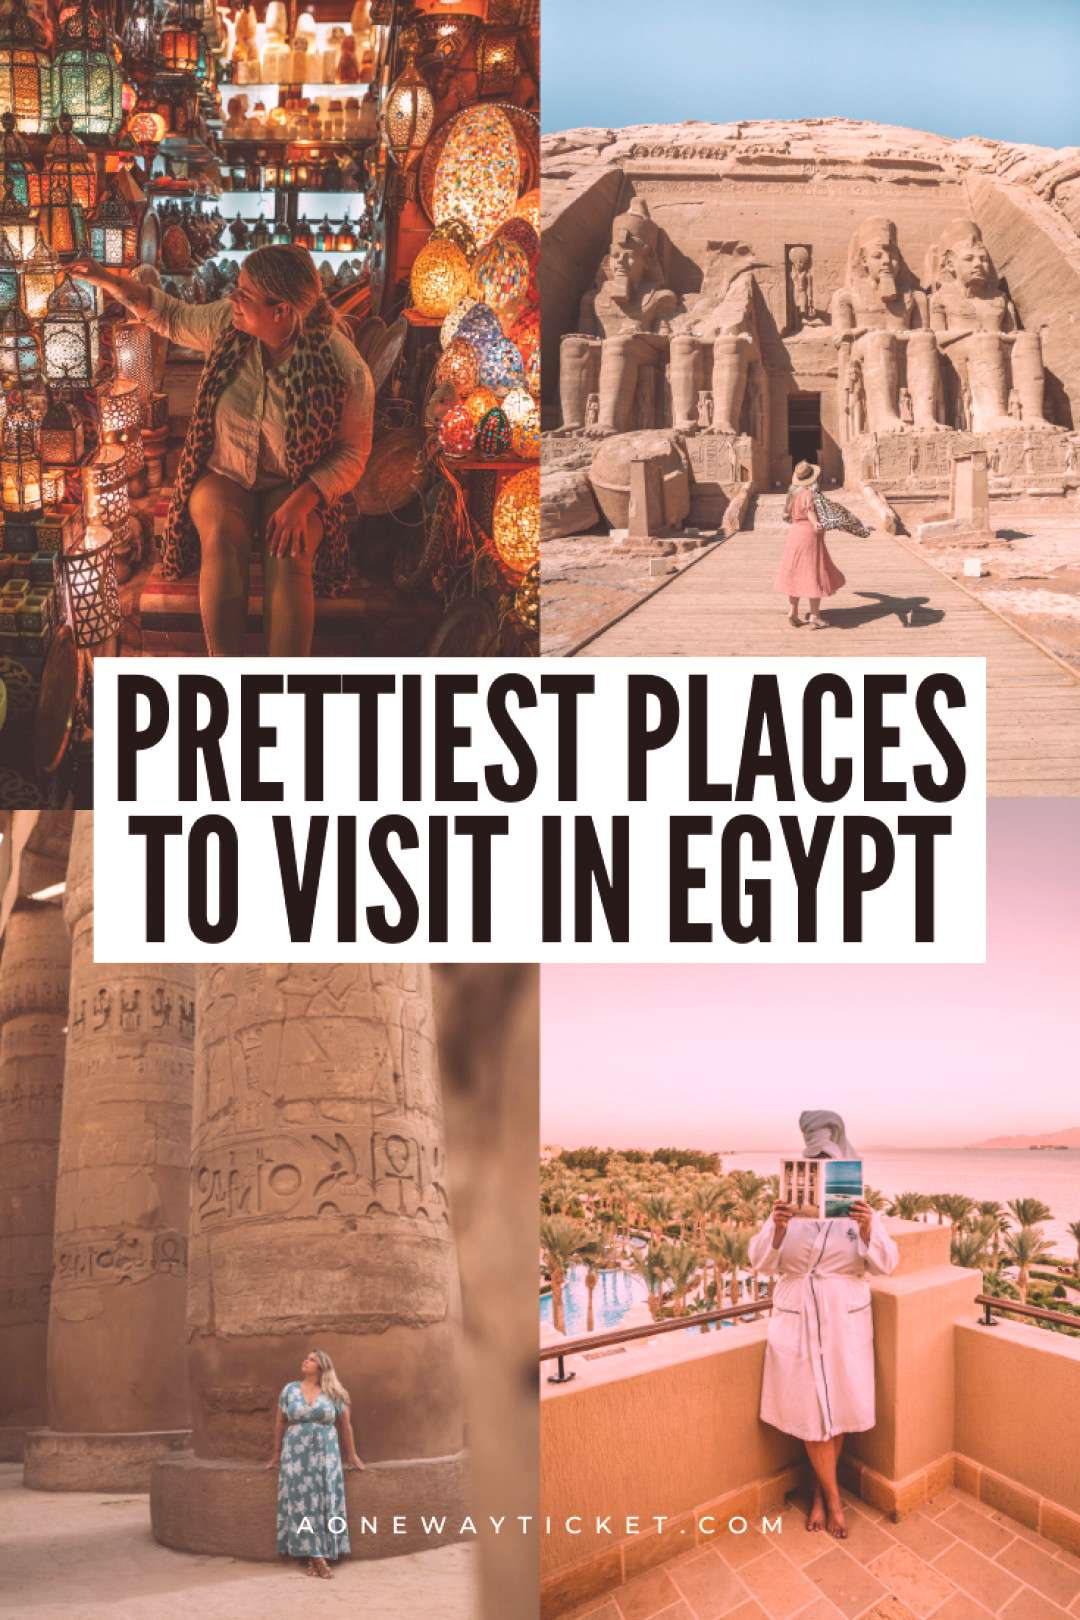 Prettiest Places to Visit in Egypt amp How to Avoid the Crowds   A One Way Ticket - -